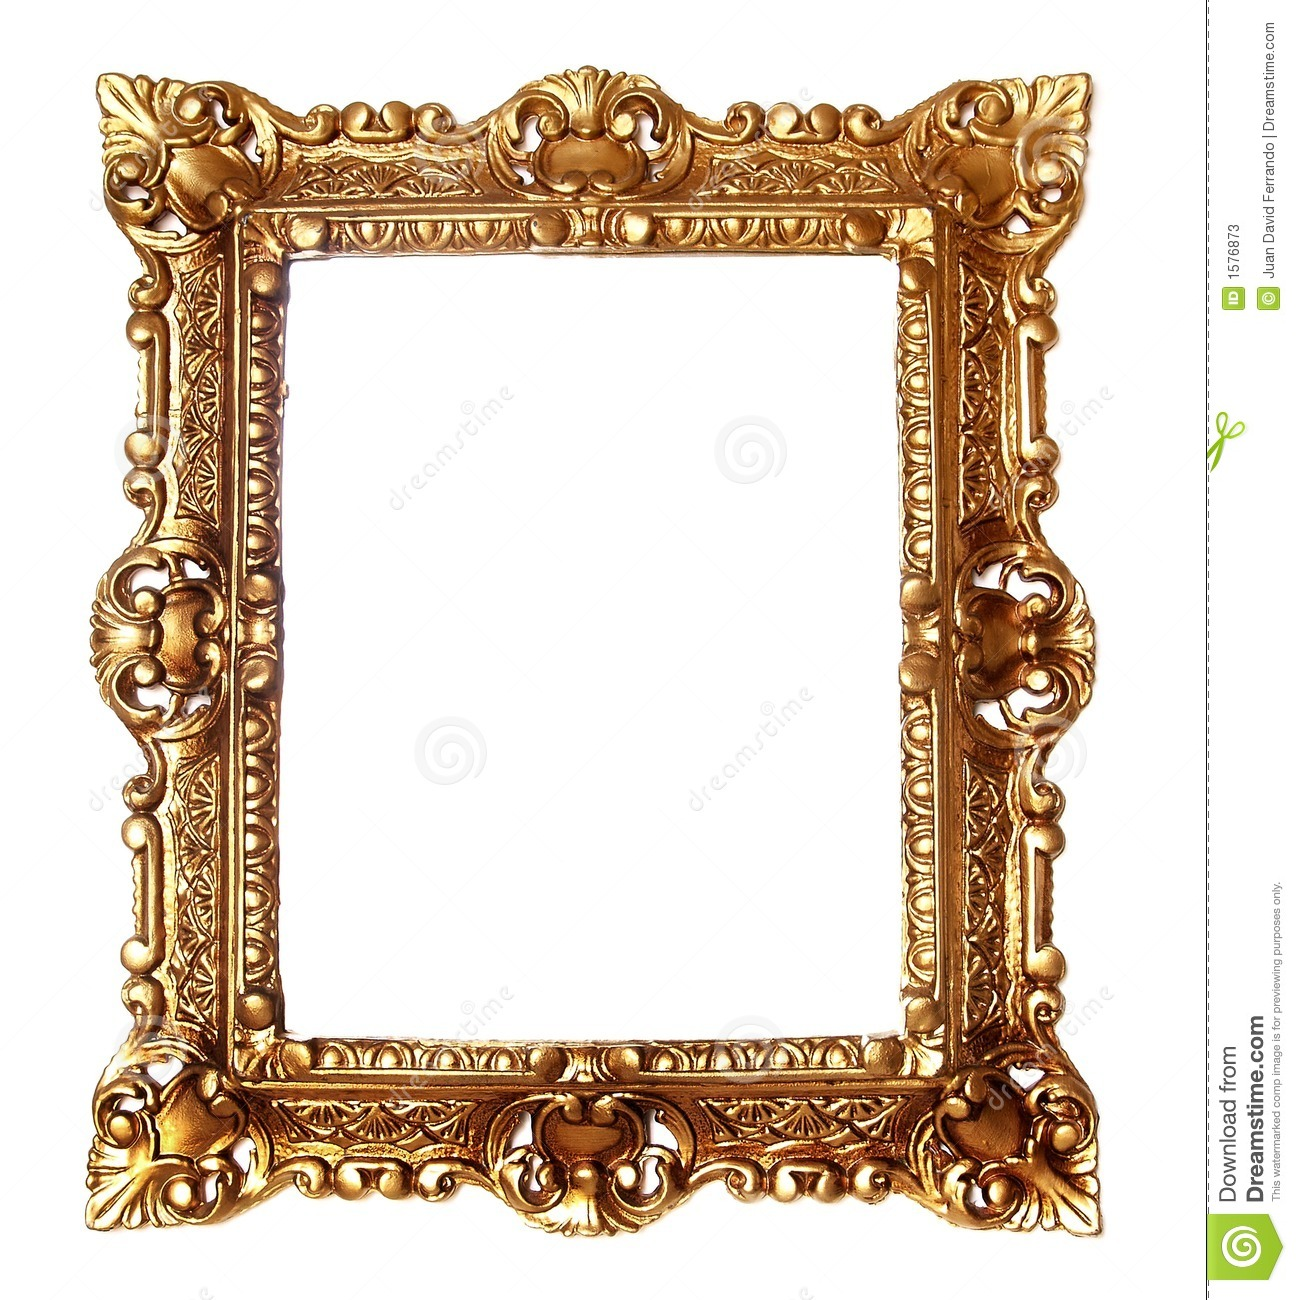 Gold block frames clipart clipart freeuse download Gold block frames clipart - ClipartFest clipart freeuse download